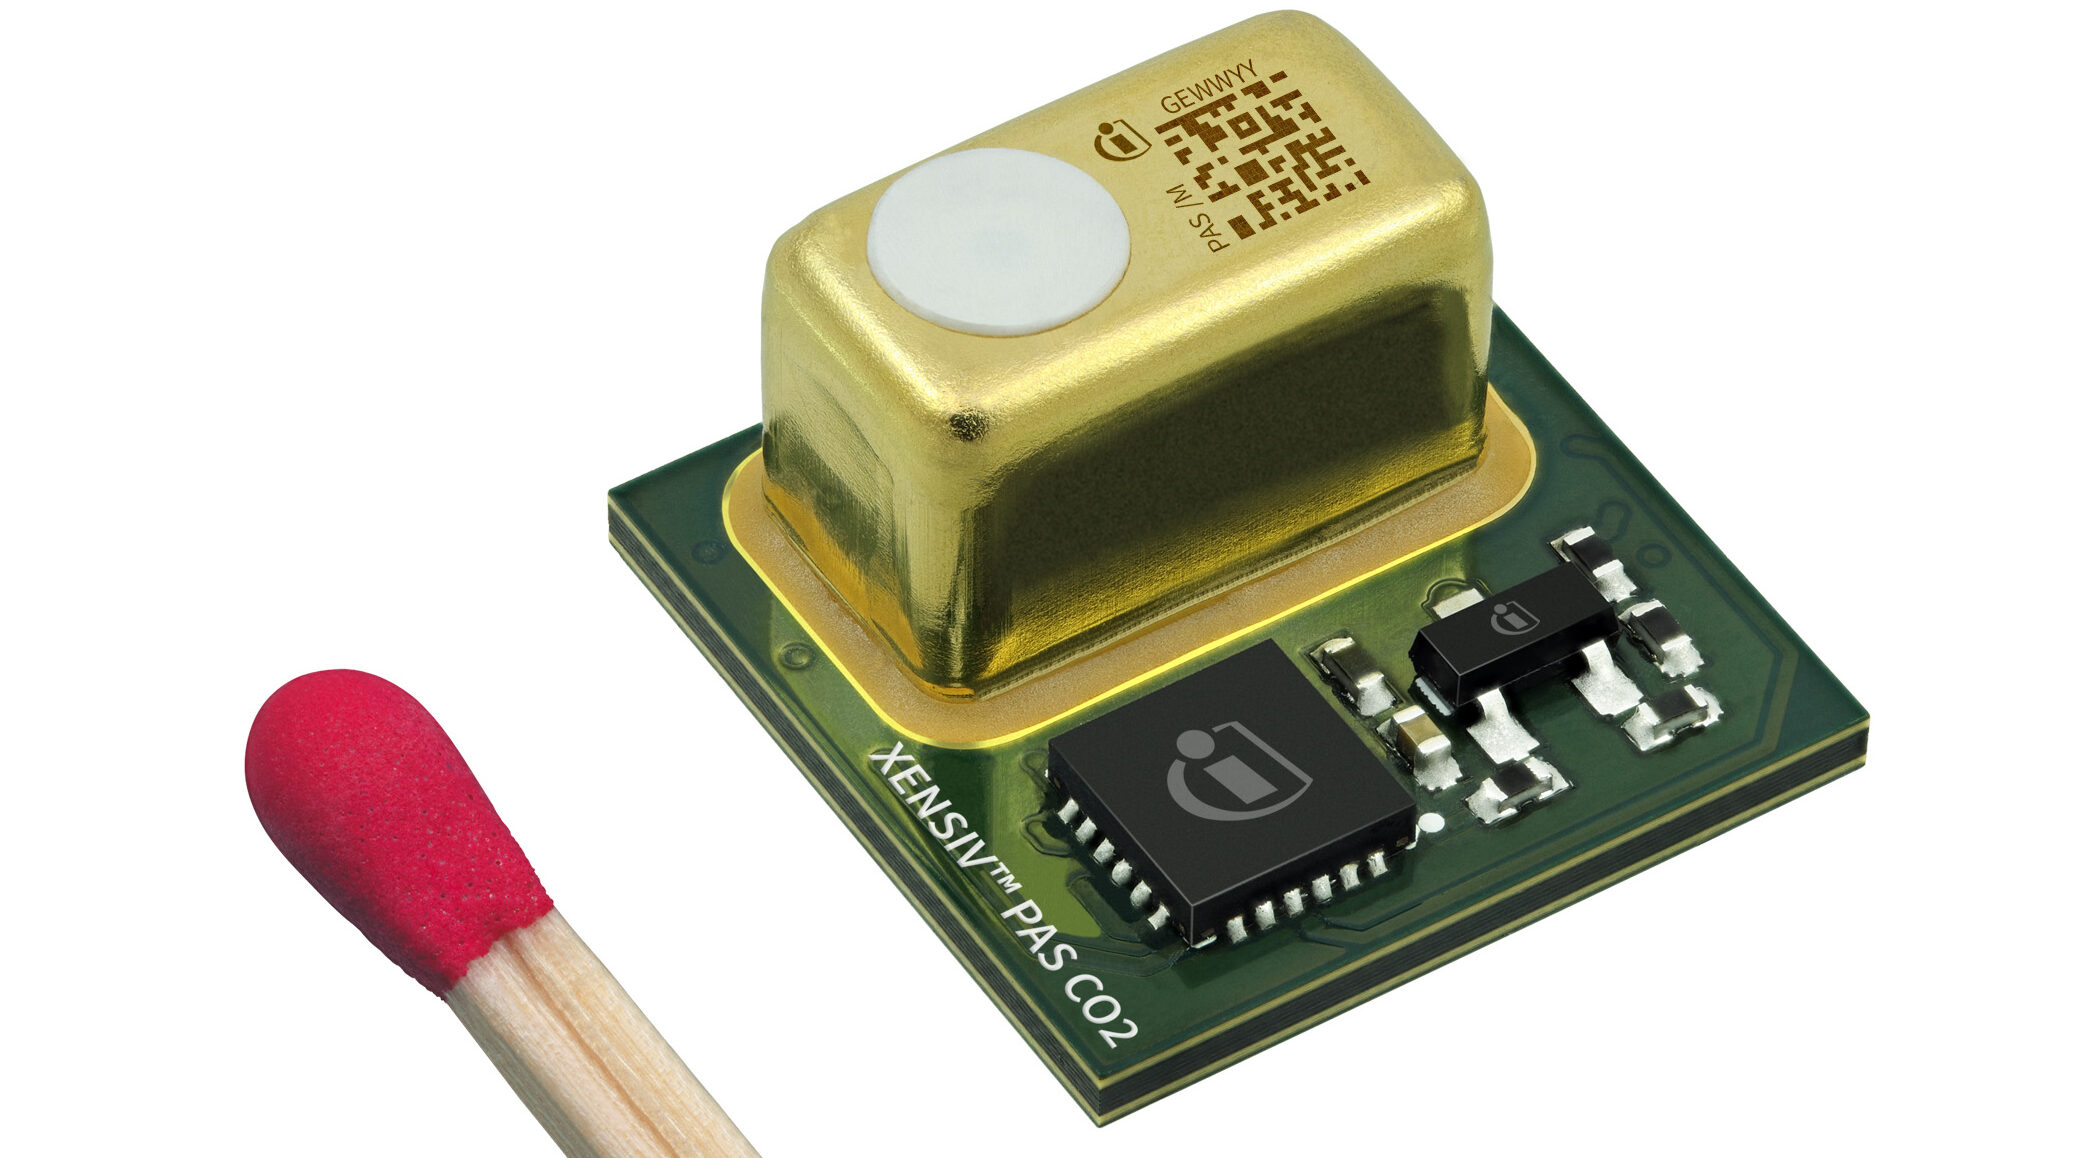 Infineon presents tailored sensor solutions for smart buildings and life in the future